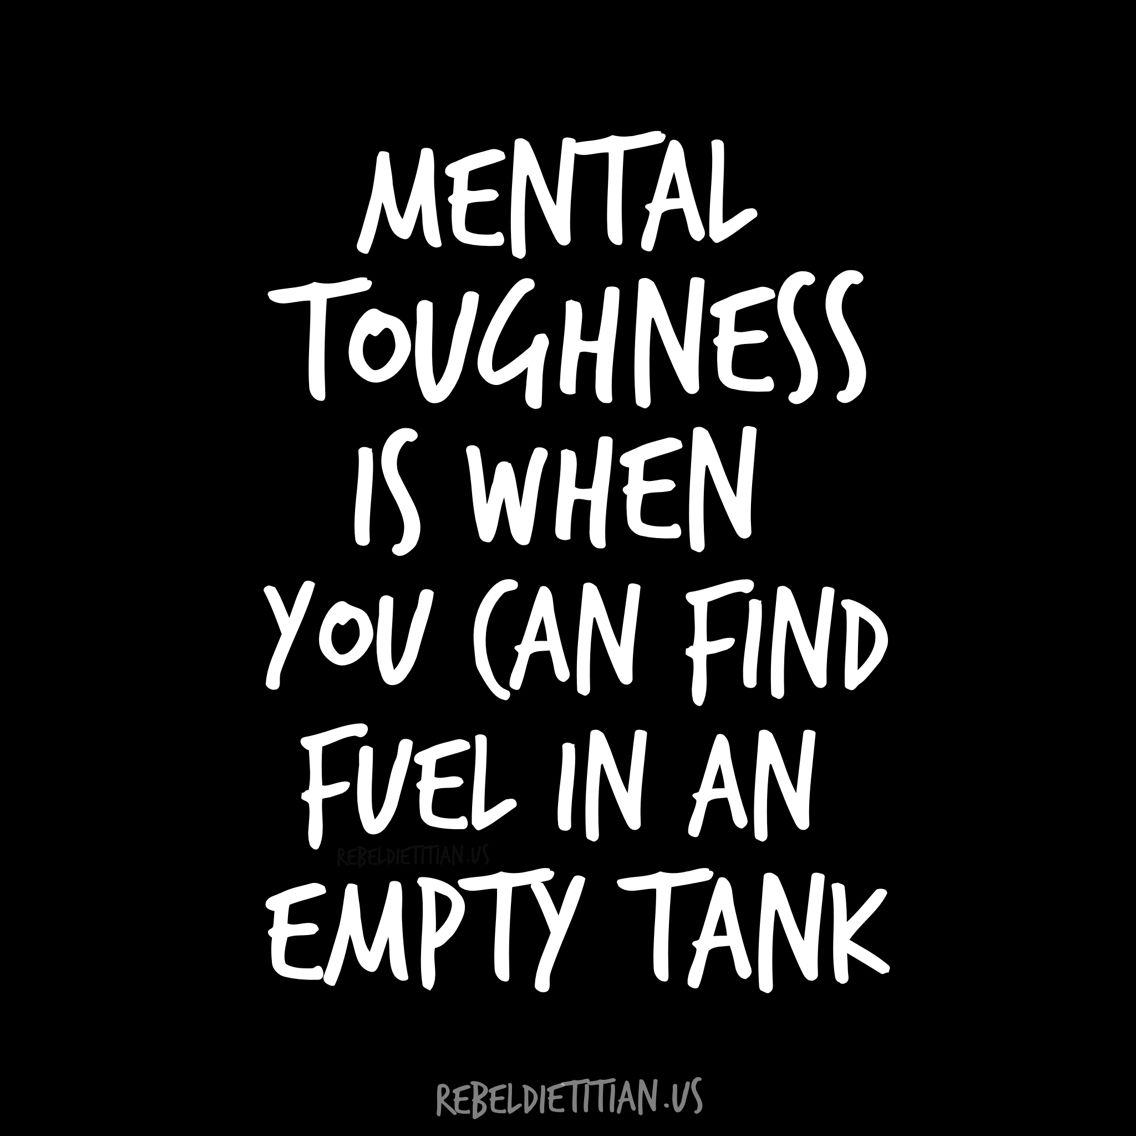 Persistence Motivational Quotes: Mental Strength Quotes